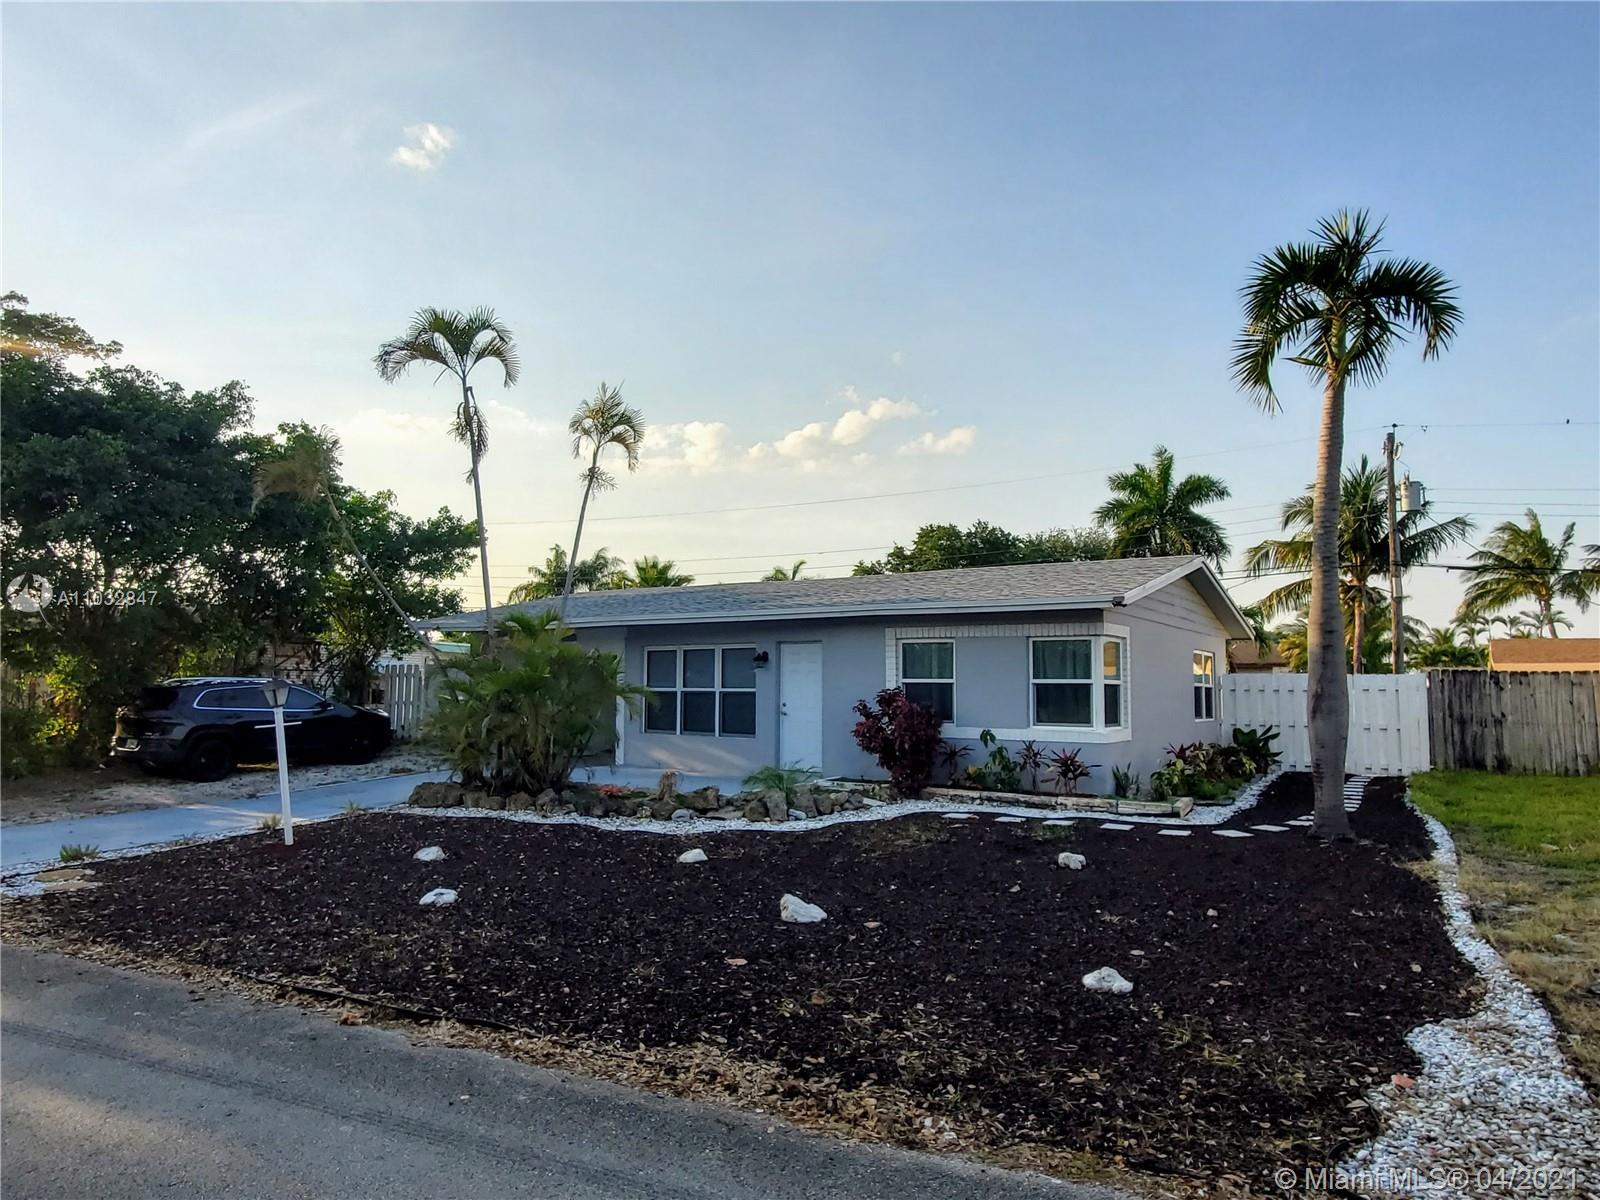 Remodeled 2 bedroom - 1 bath with a bright modern style perfectly blending elegance with functional